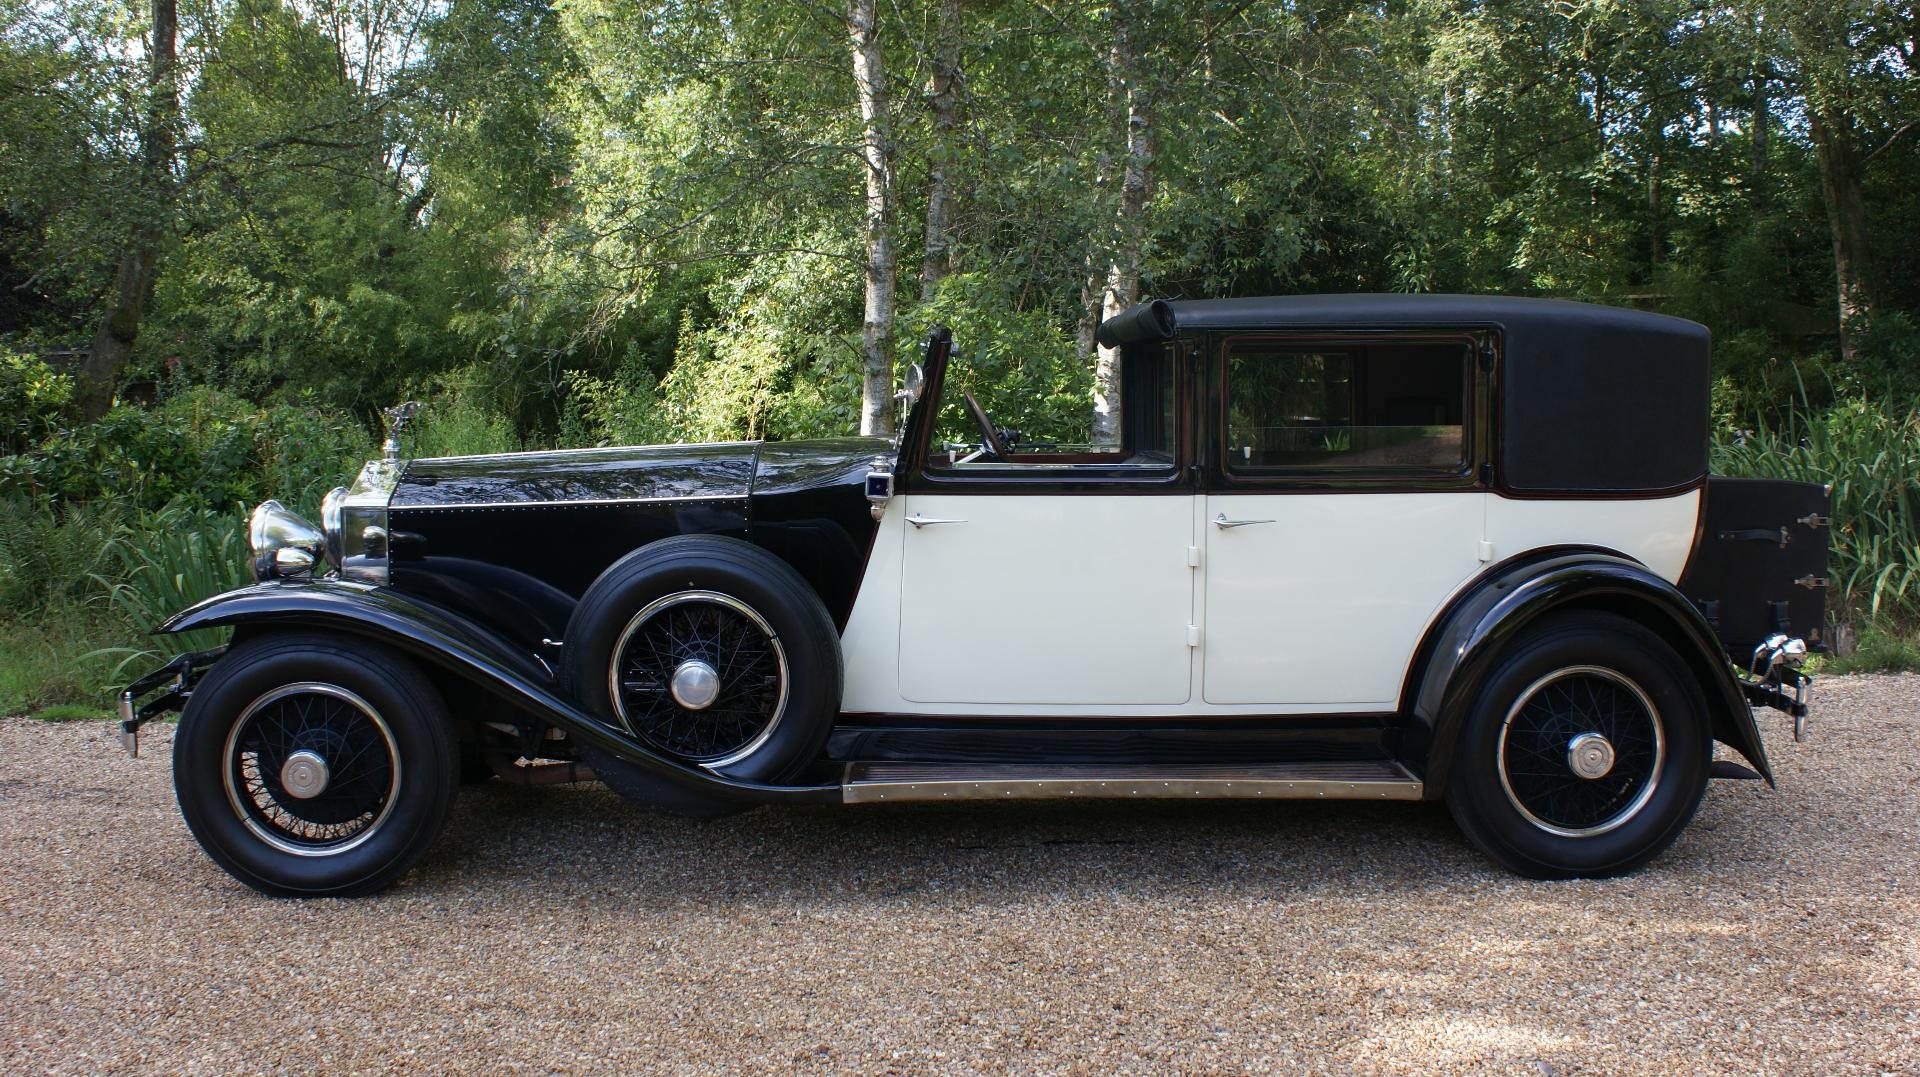 Rolls-Royce Phantom II For Sale In Landford, Wiltshire